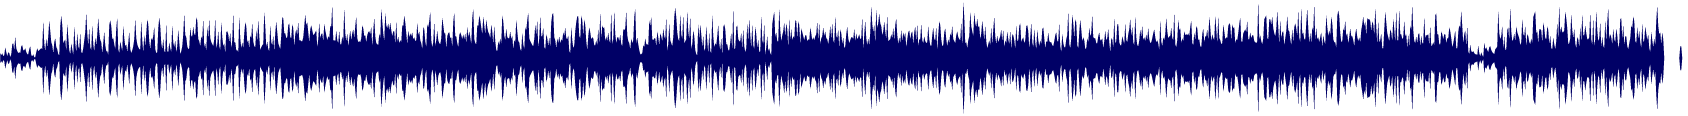 waveform of track #88658